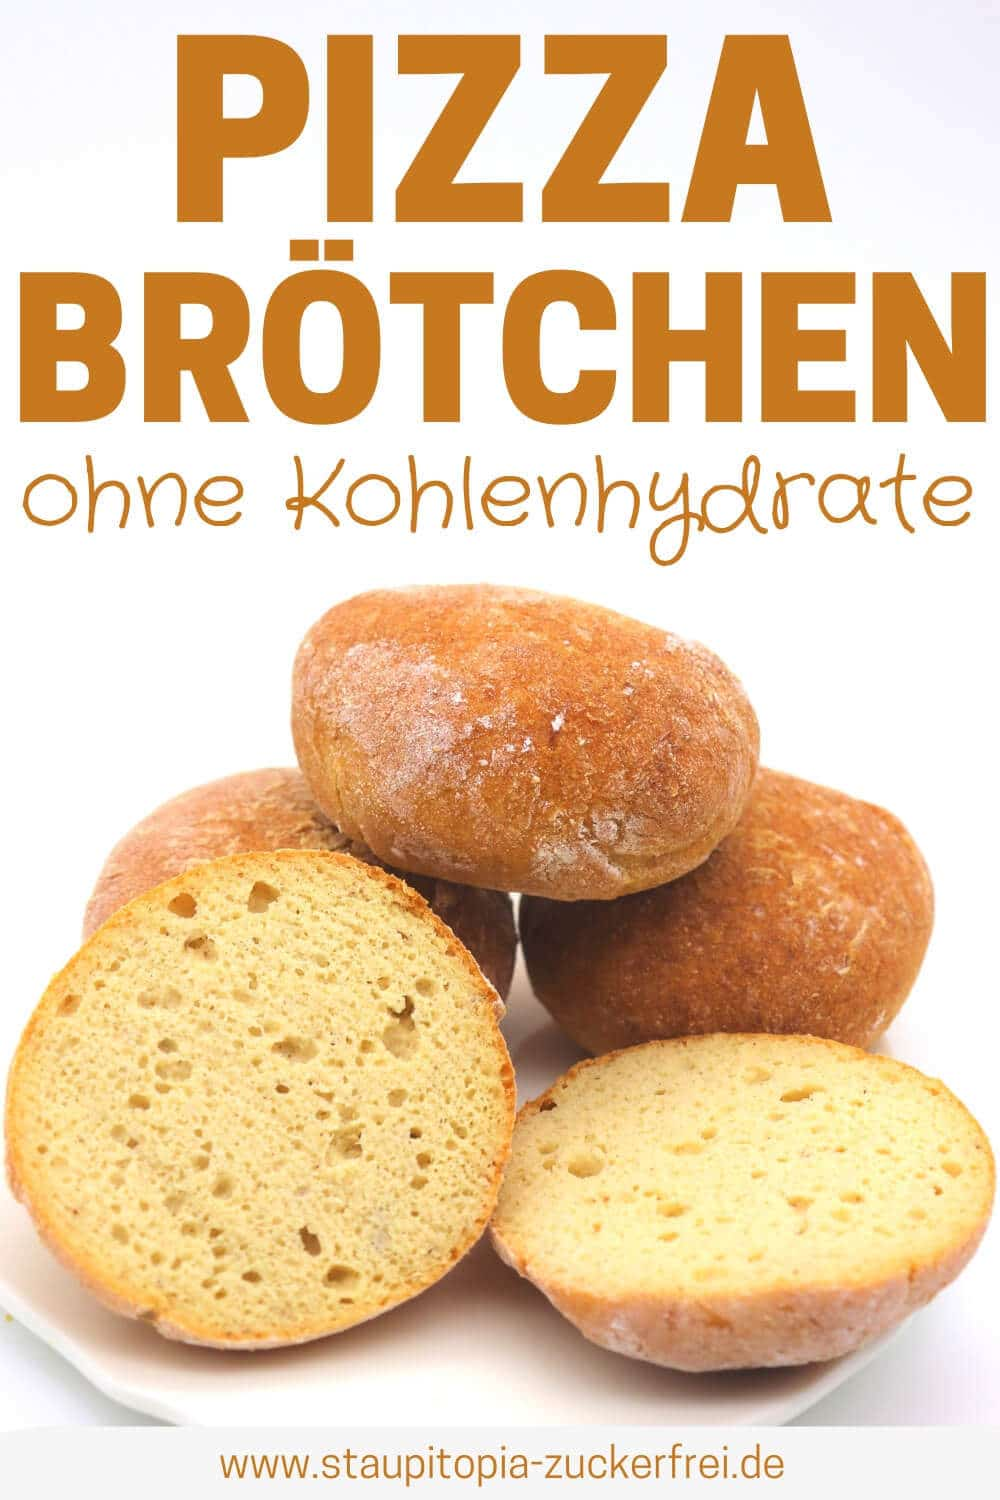 Low Carb Brotersatz Rezepte